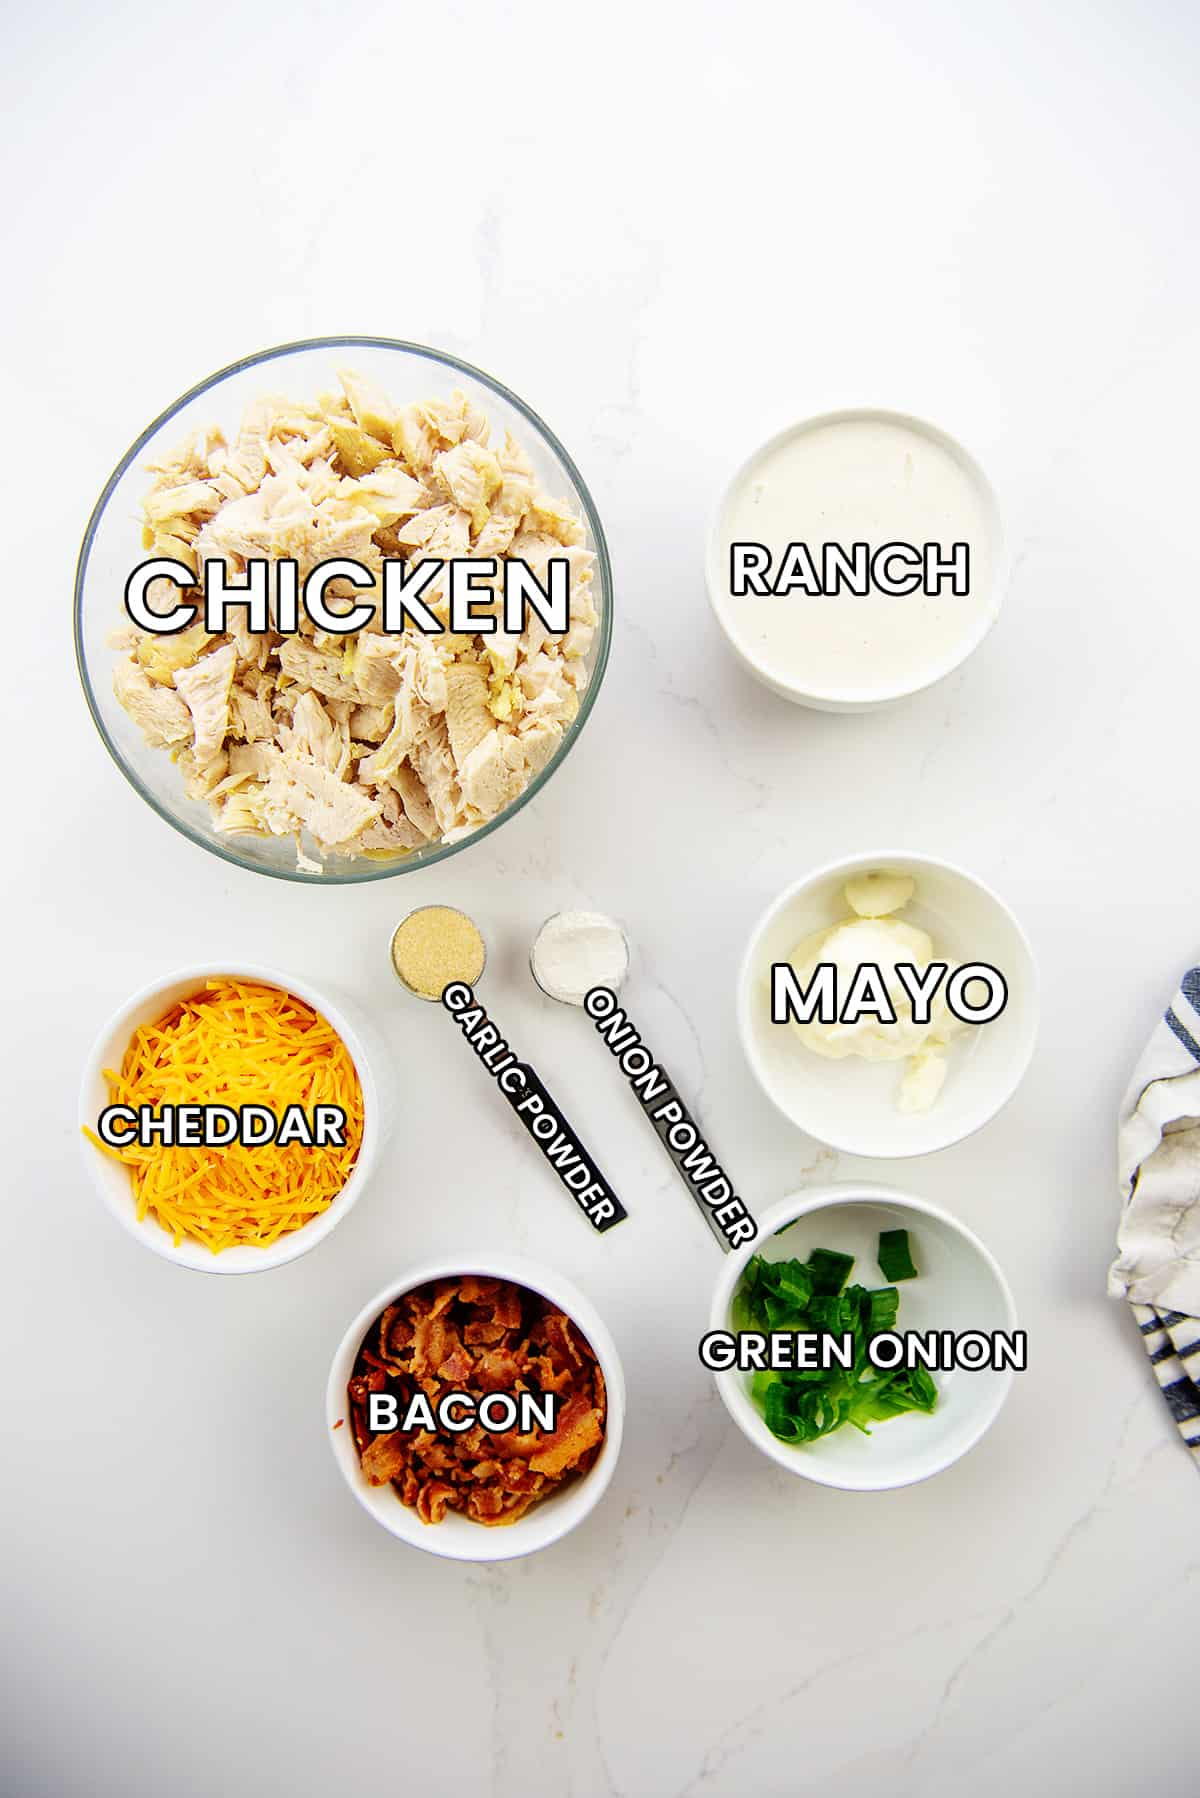 ingredients for chicken salad on white countertop.